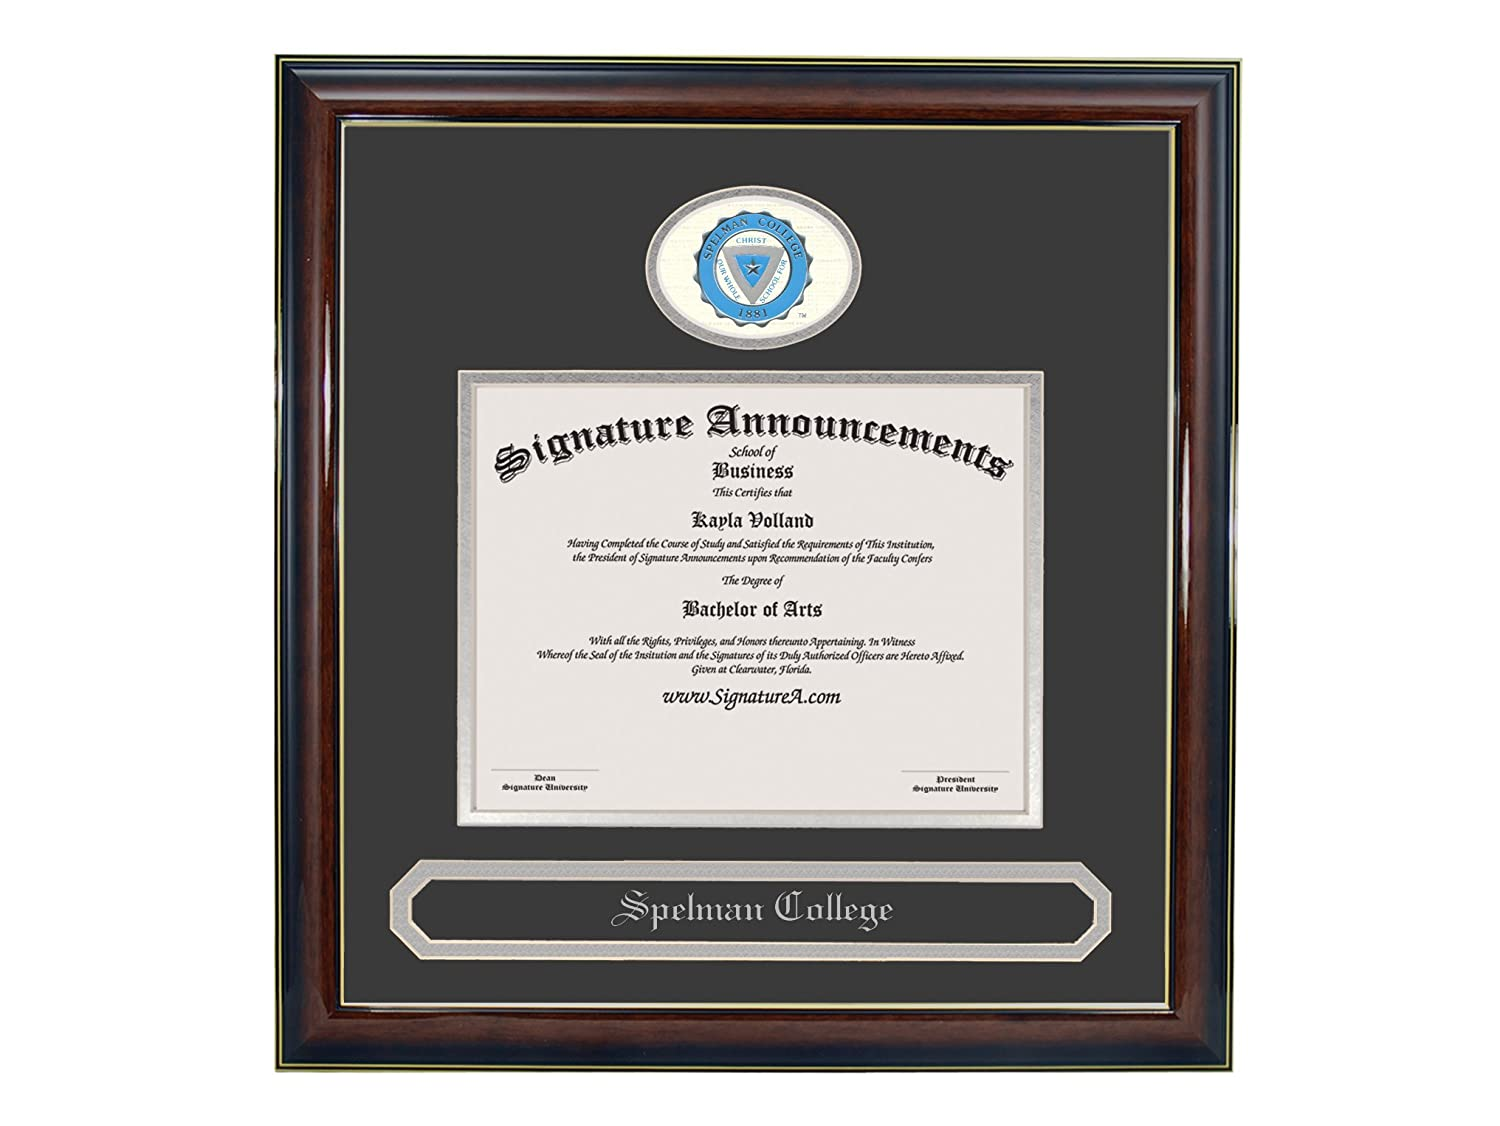 Professional//Doctor Sculpted Foil Seal /& Name Graduation Diploma Frame Gold Accent Gloss Mahogany Signature Announcements Spelman-College Undergraduate 16 x 16